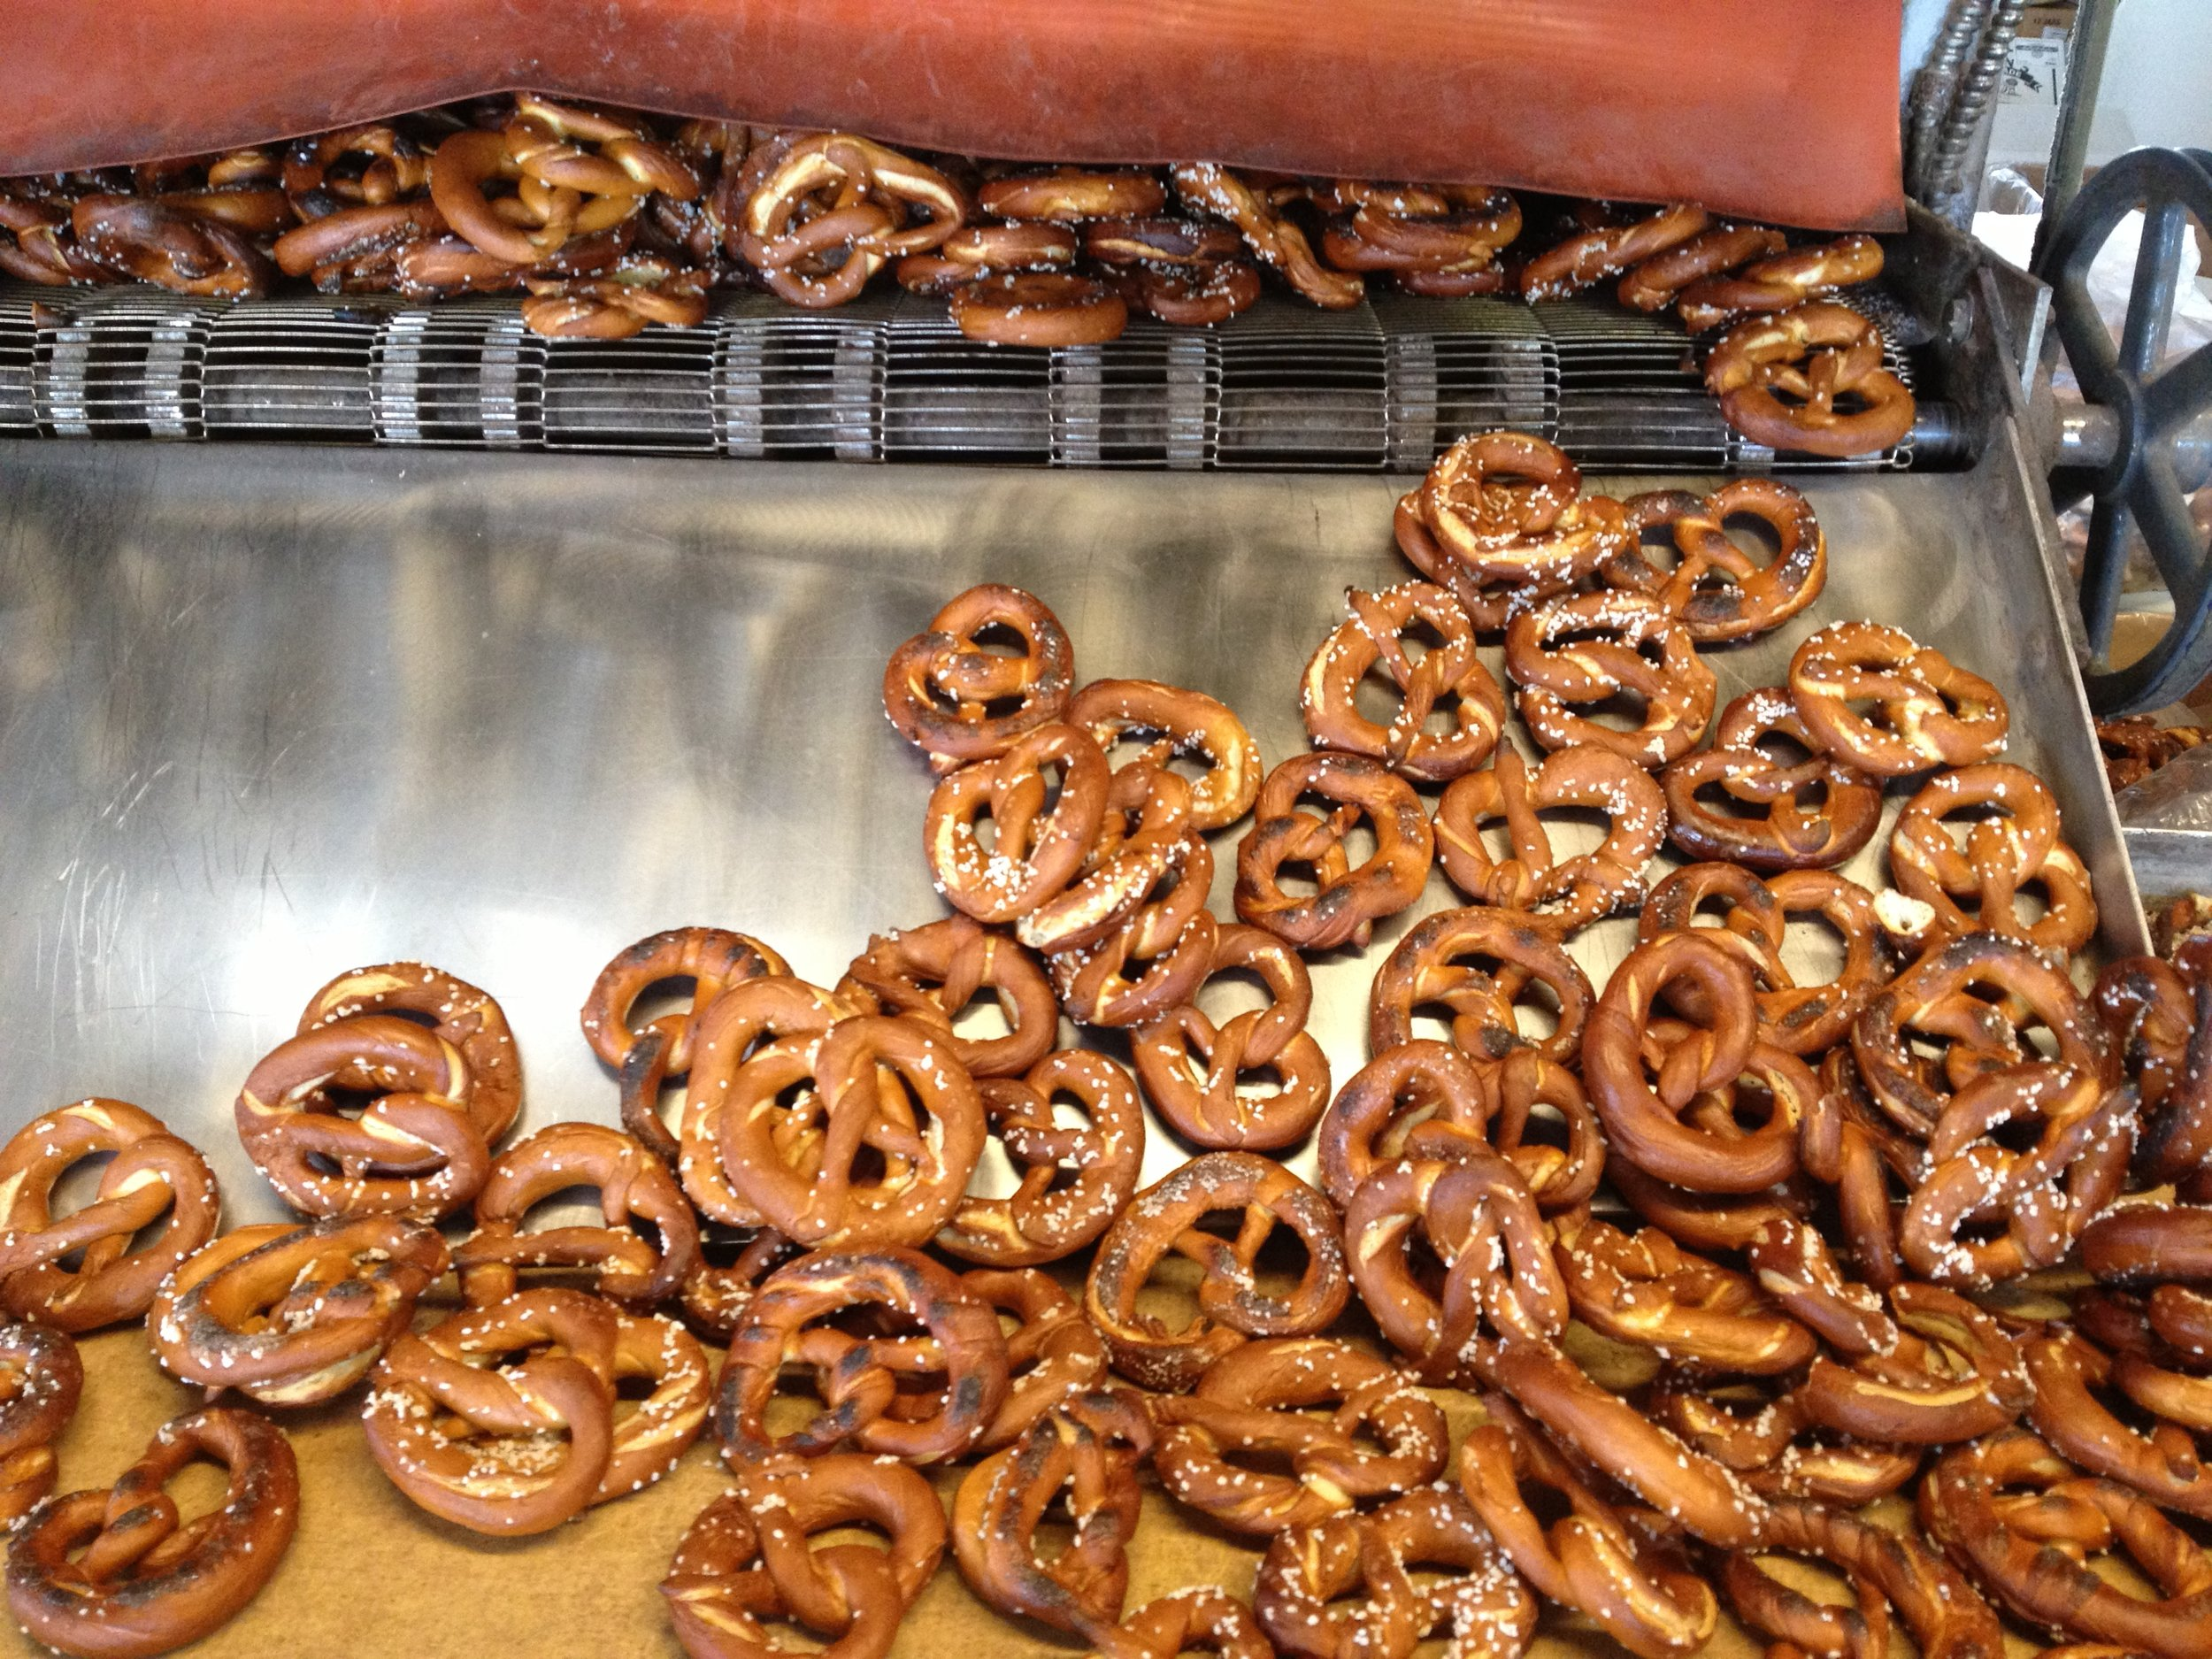 PRETZEL OUT OF DRYING RACK.jpg